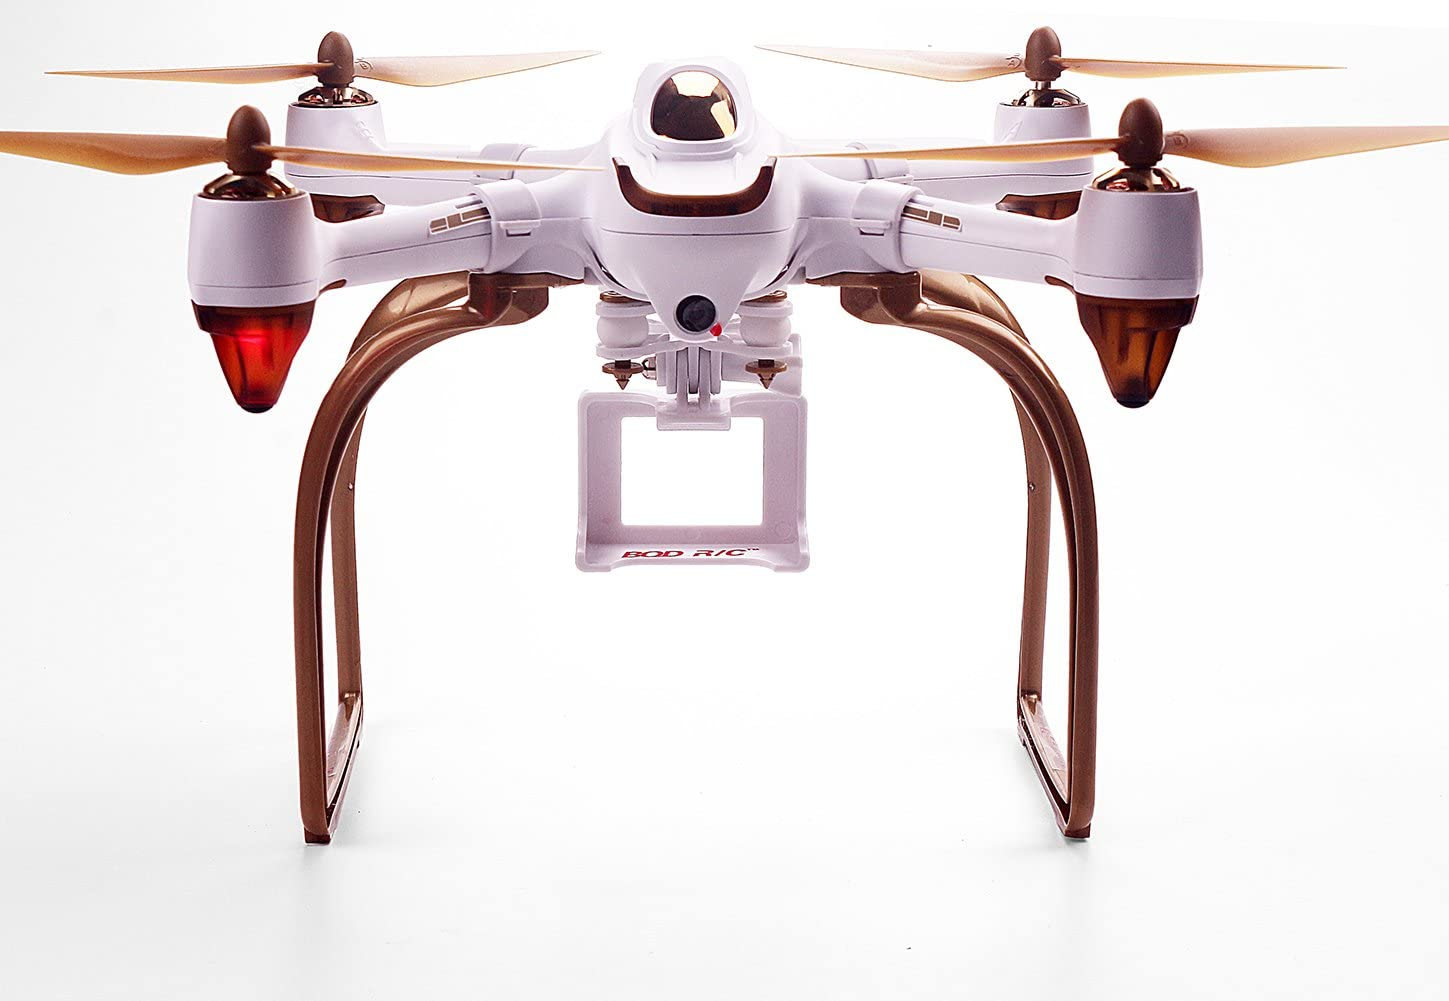 BTG Compatible with H501S Quadcopter-Upgrade Extended Landing Gear and Camera Holder with Gimbal Kit Color: Golden